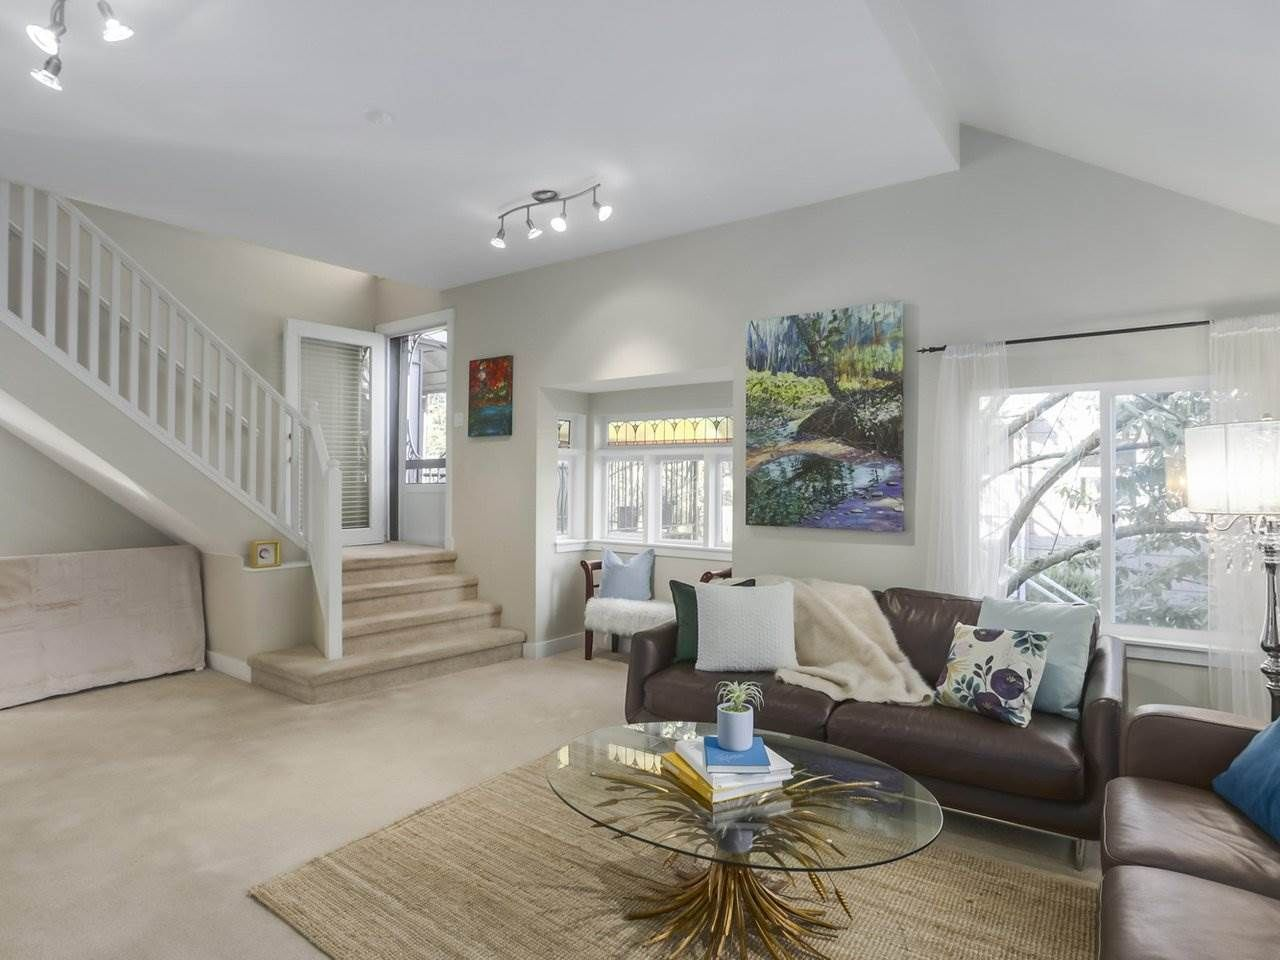 Photo 3: Photos: 325 W KINGS Road in North Vancouver: Upper Lonsdale House for sale : MLS®# R2443642